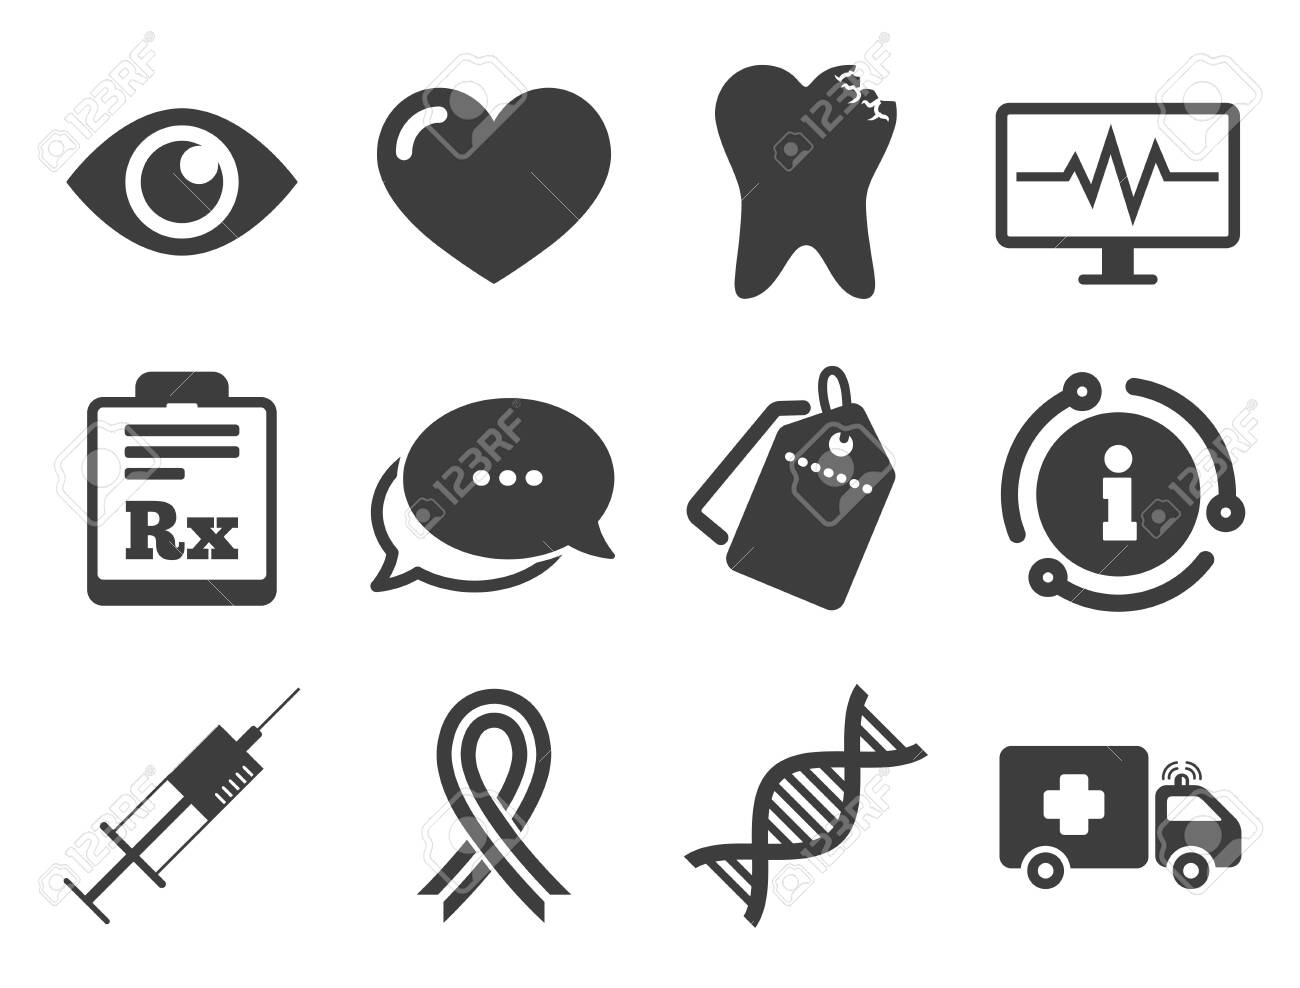 Tooth, syringe and ambulance signs. Discount offer tag, chat, info icon. Medicine, healthcare and diagnosis icons. Dna, awareness ribbon symbols. Classic style signs set. Vector - 135673212